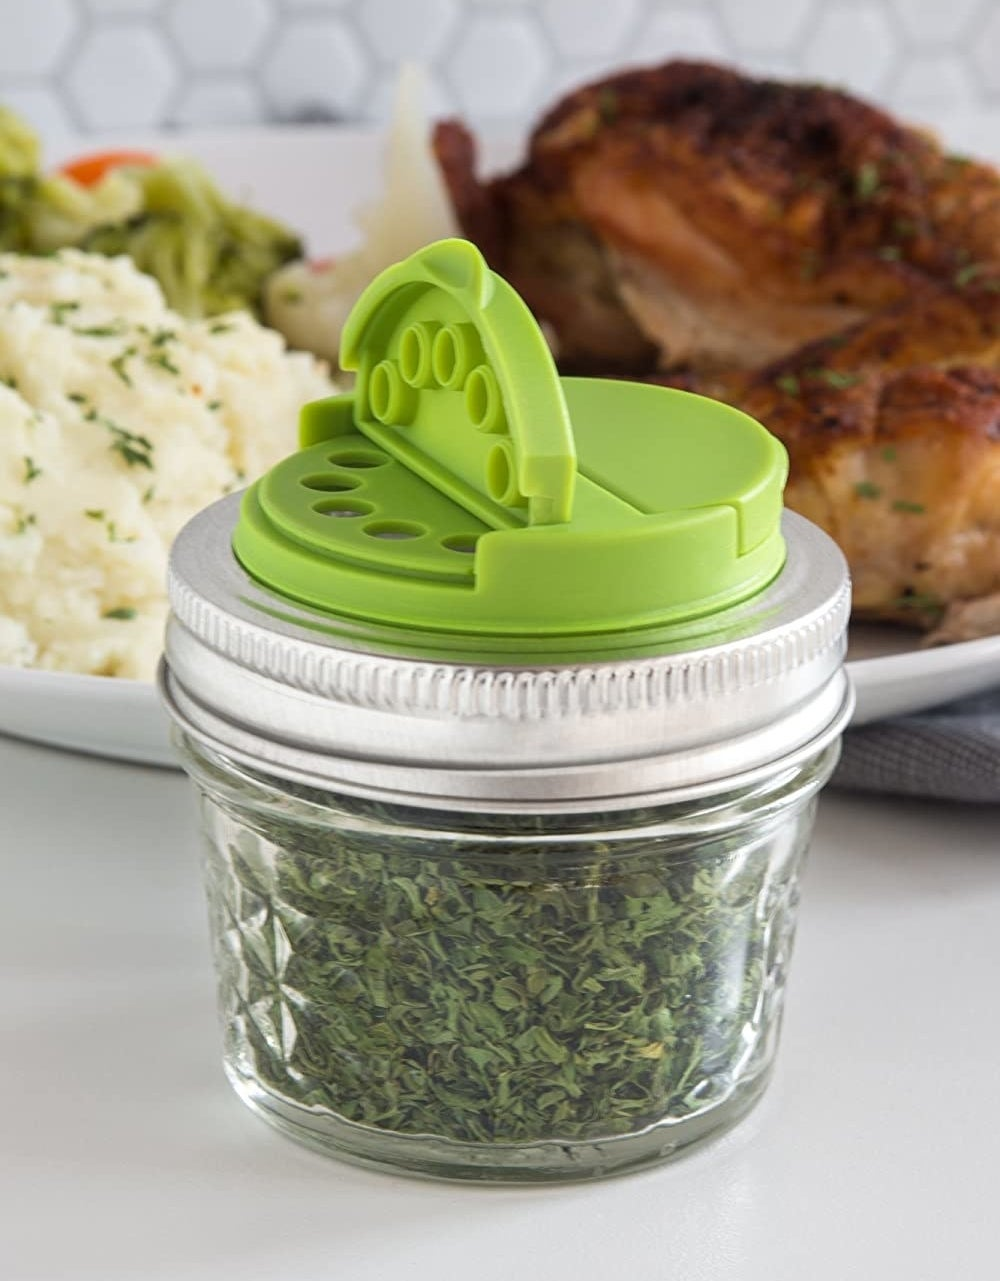 A small spice lid on top of a tiny Mason jar filled with herbs